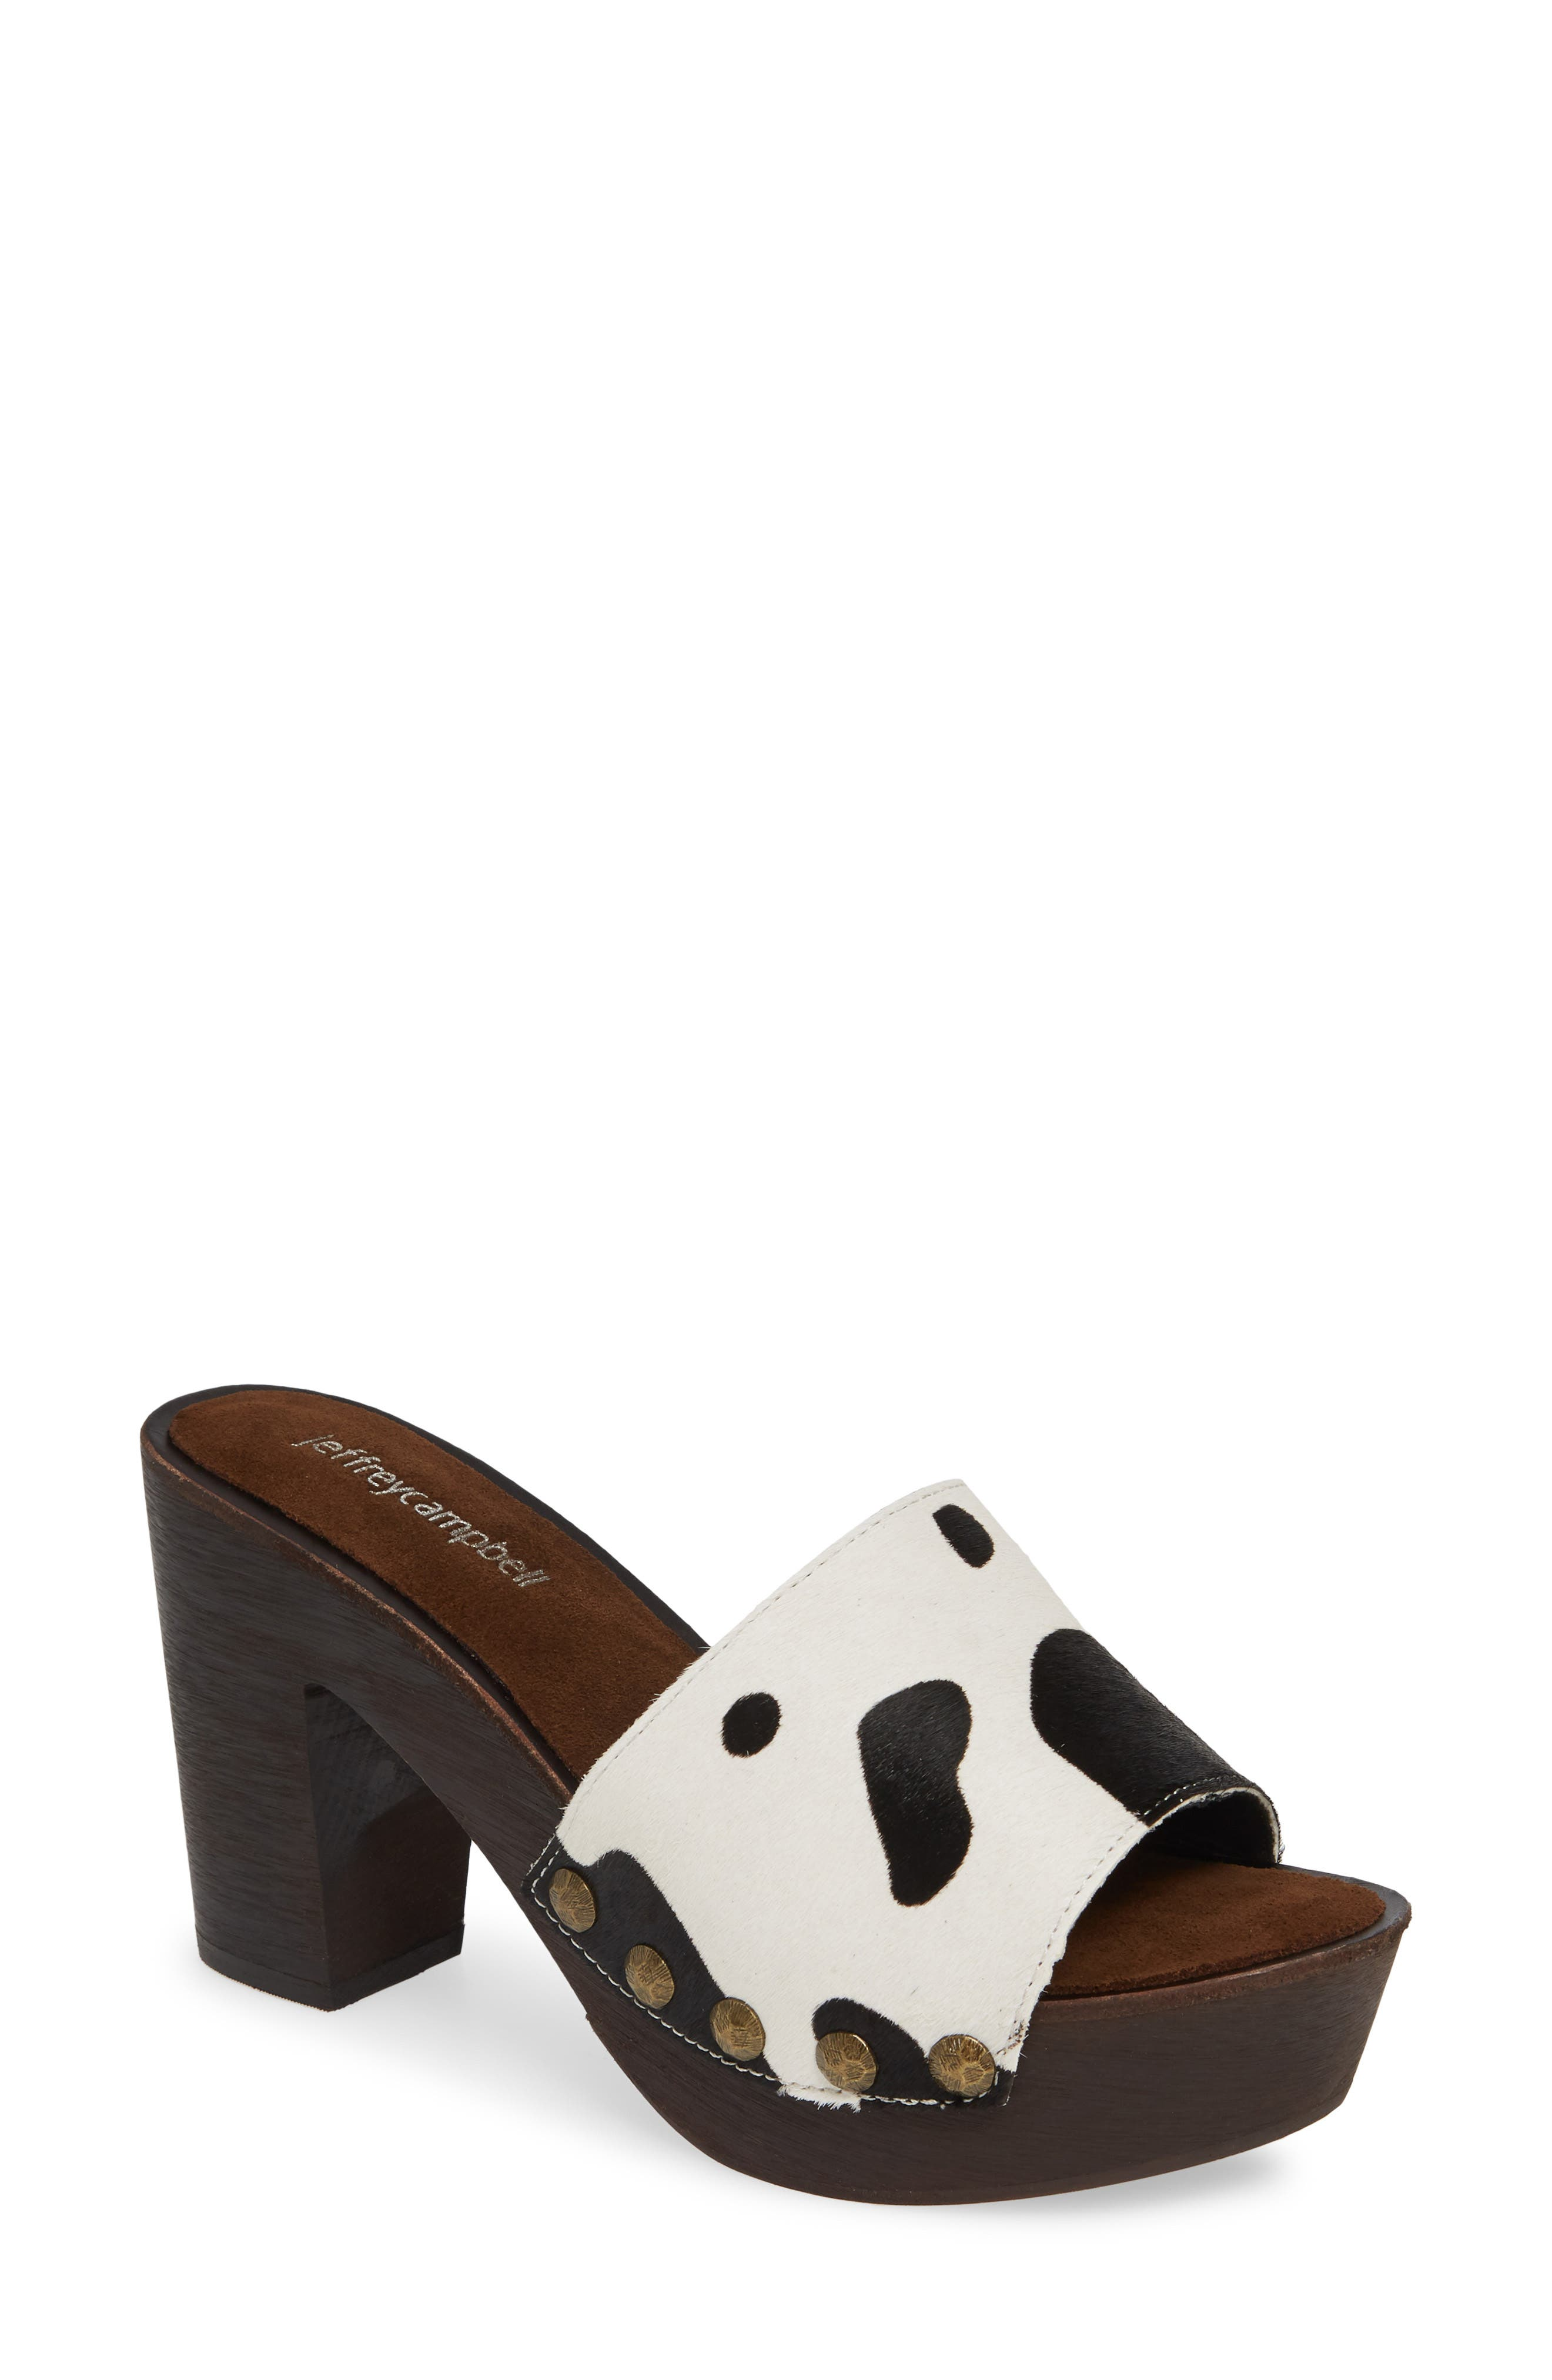 D-Light Genuine Calf Hair Platform Sandal, Main, color, BLACK/ WHITE COW PRINT